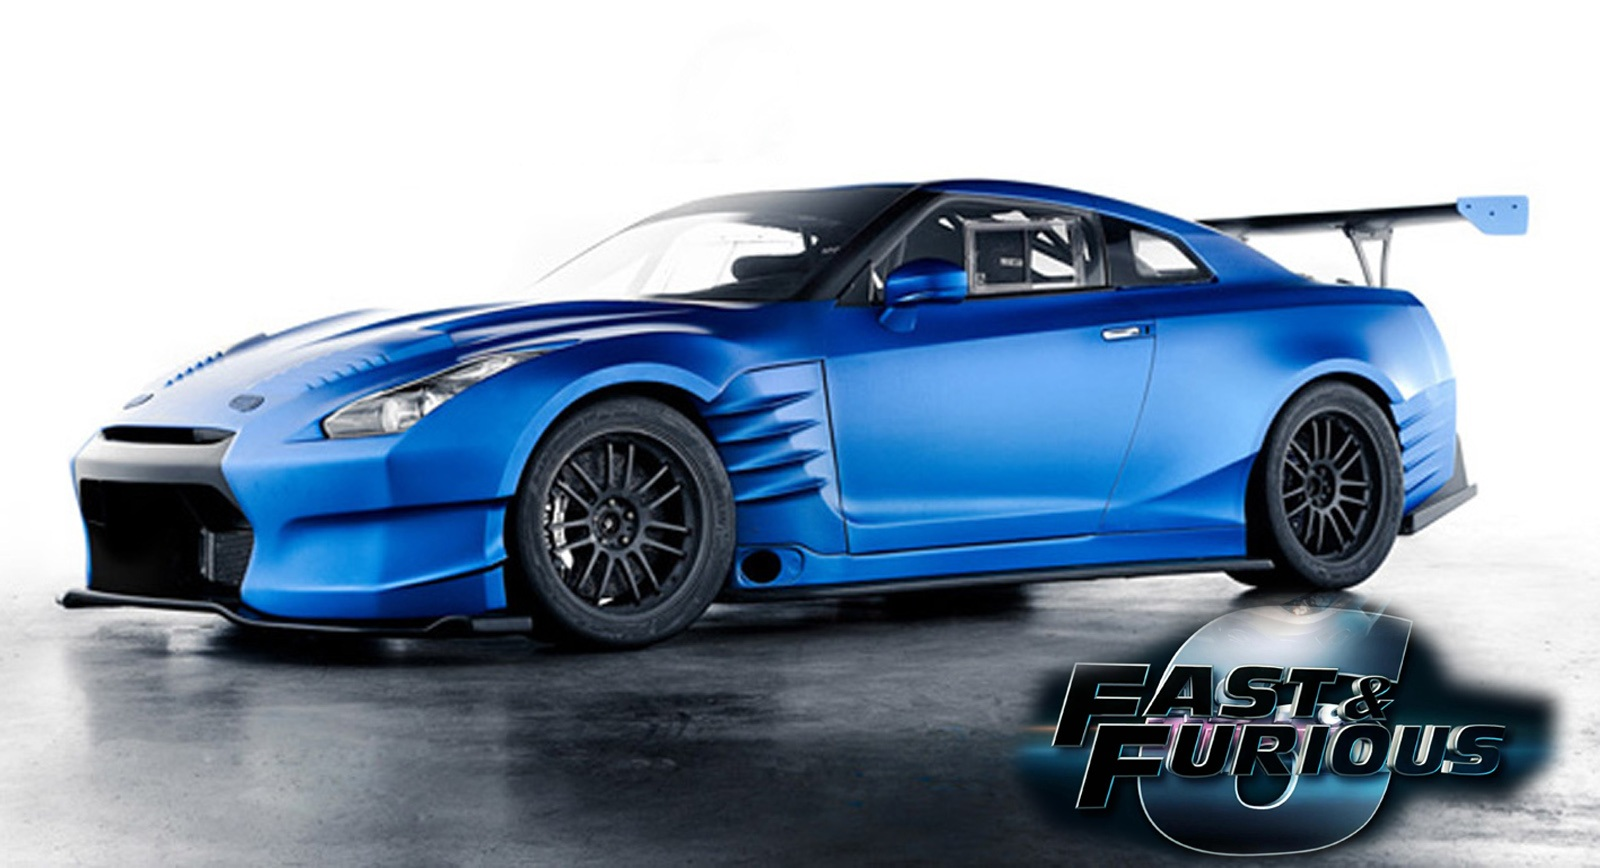 Fast And Furious Cars Wallpaper   Desktop Backgrounds 1600x868